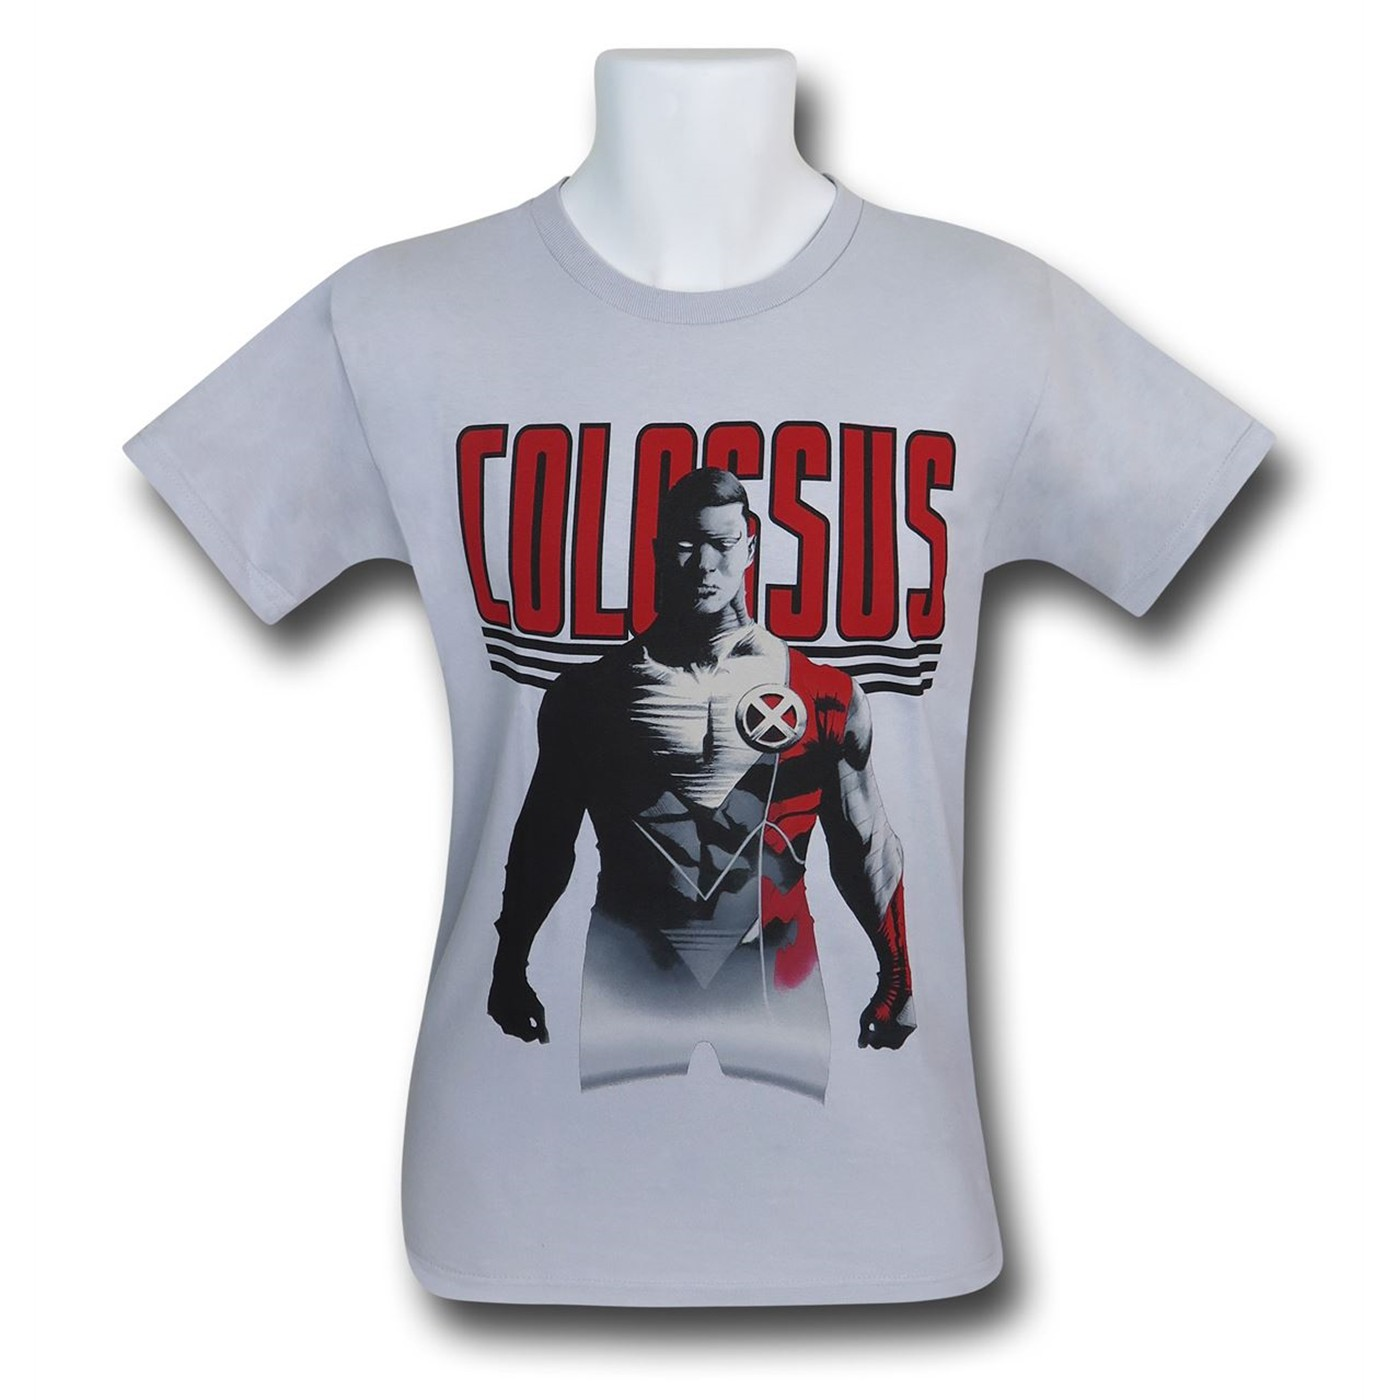 Colossus Stance Men's T-Shirt